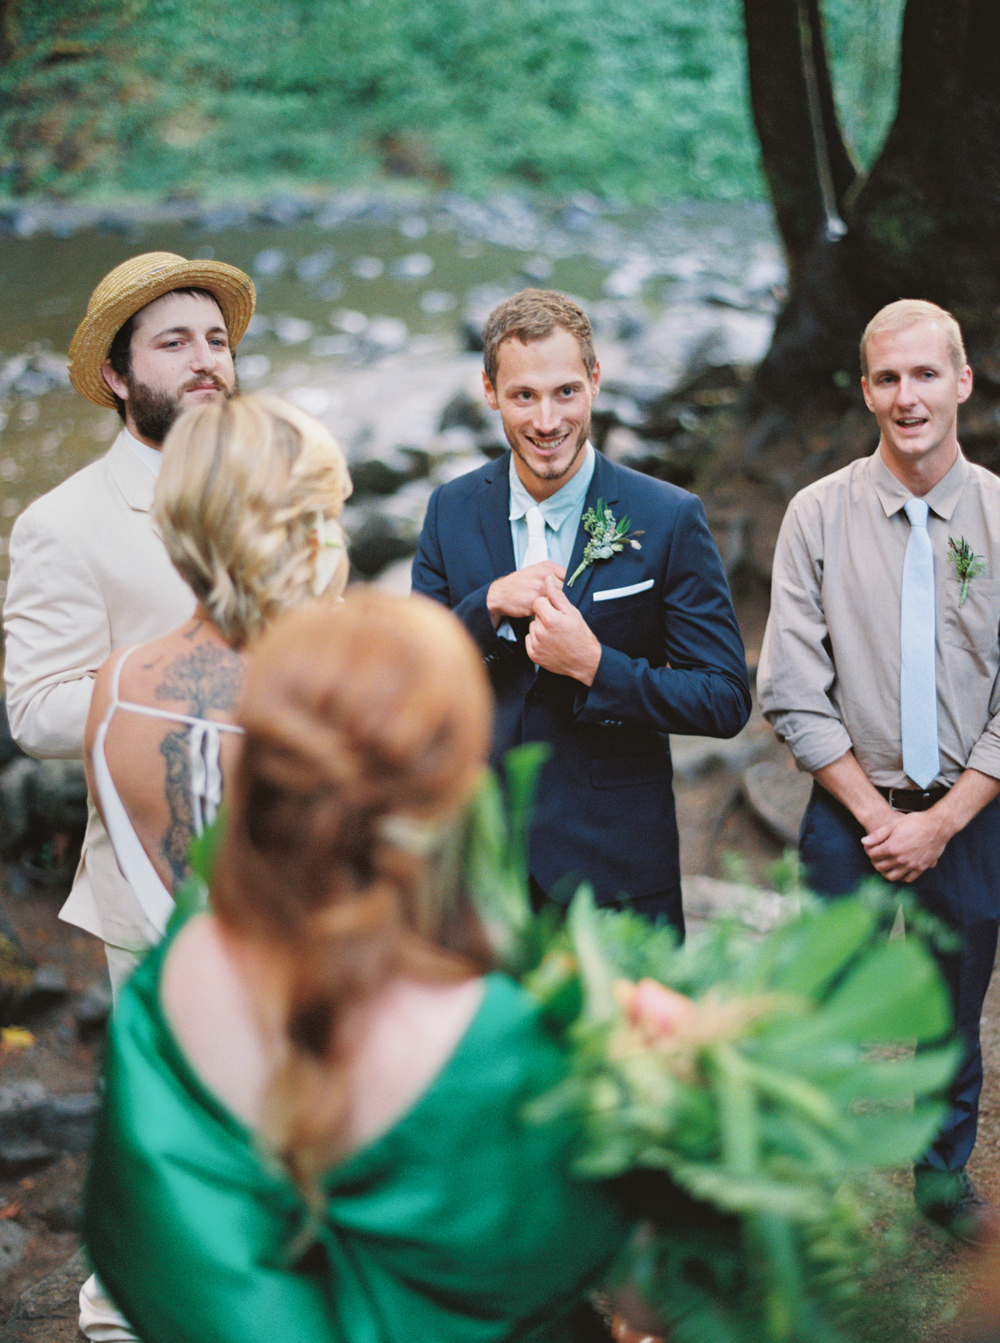 044Outlive+Creative+Tropical+Northwest+Columbia+Gorge+Elopement+Film+Photographer.jpg